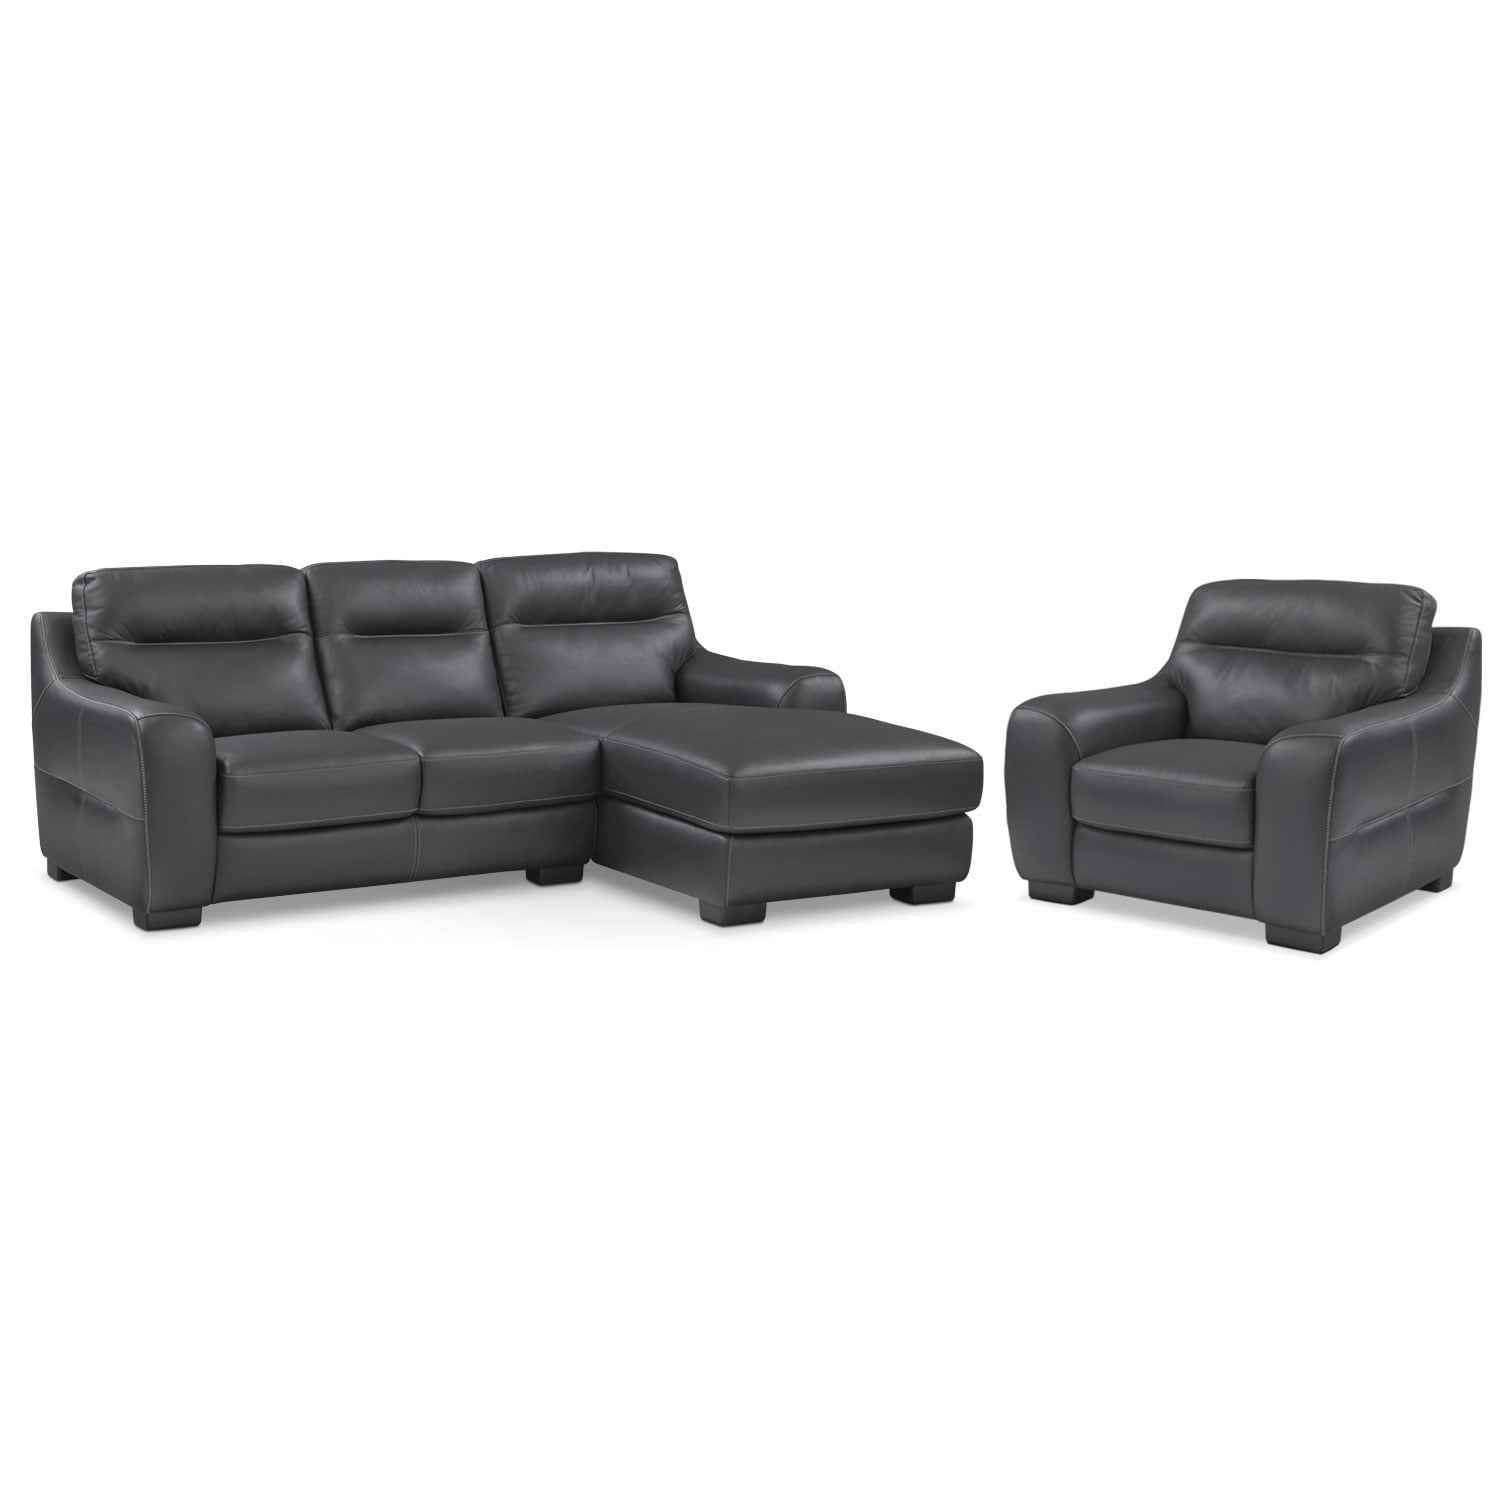 [Rocco Black 2 Pc. Right-Facing Chaise Sectional and Chair]